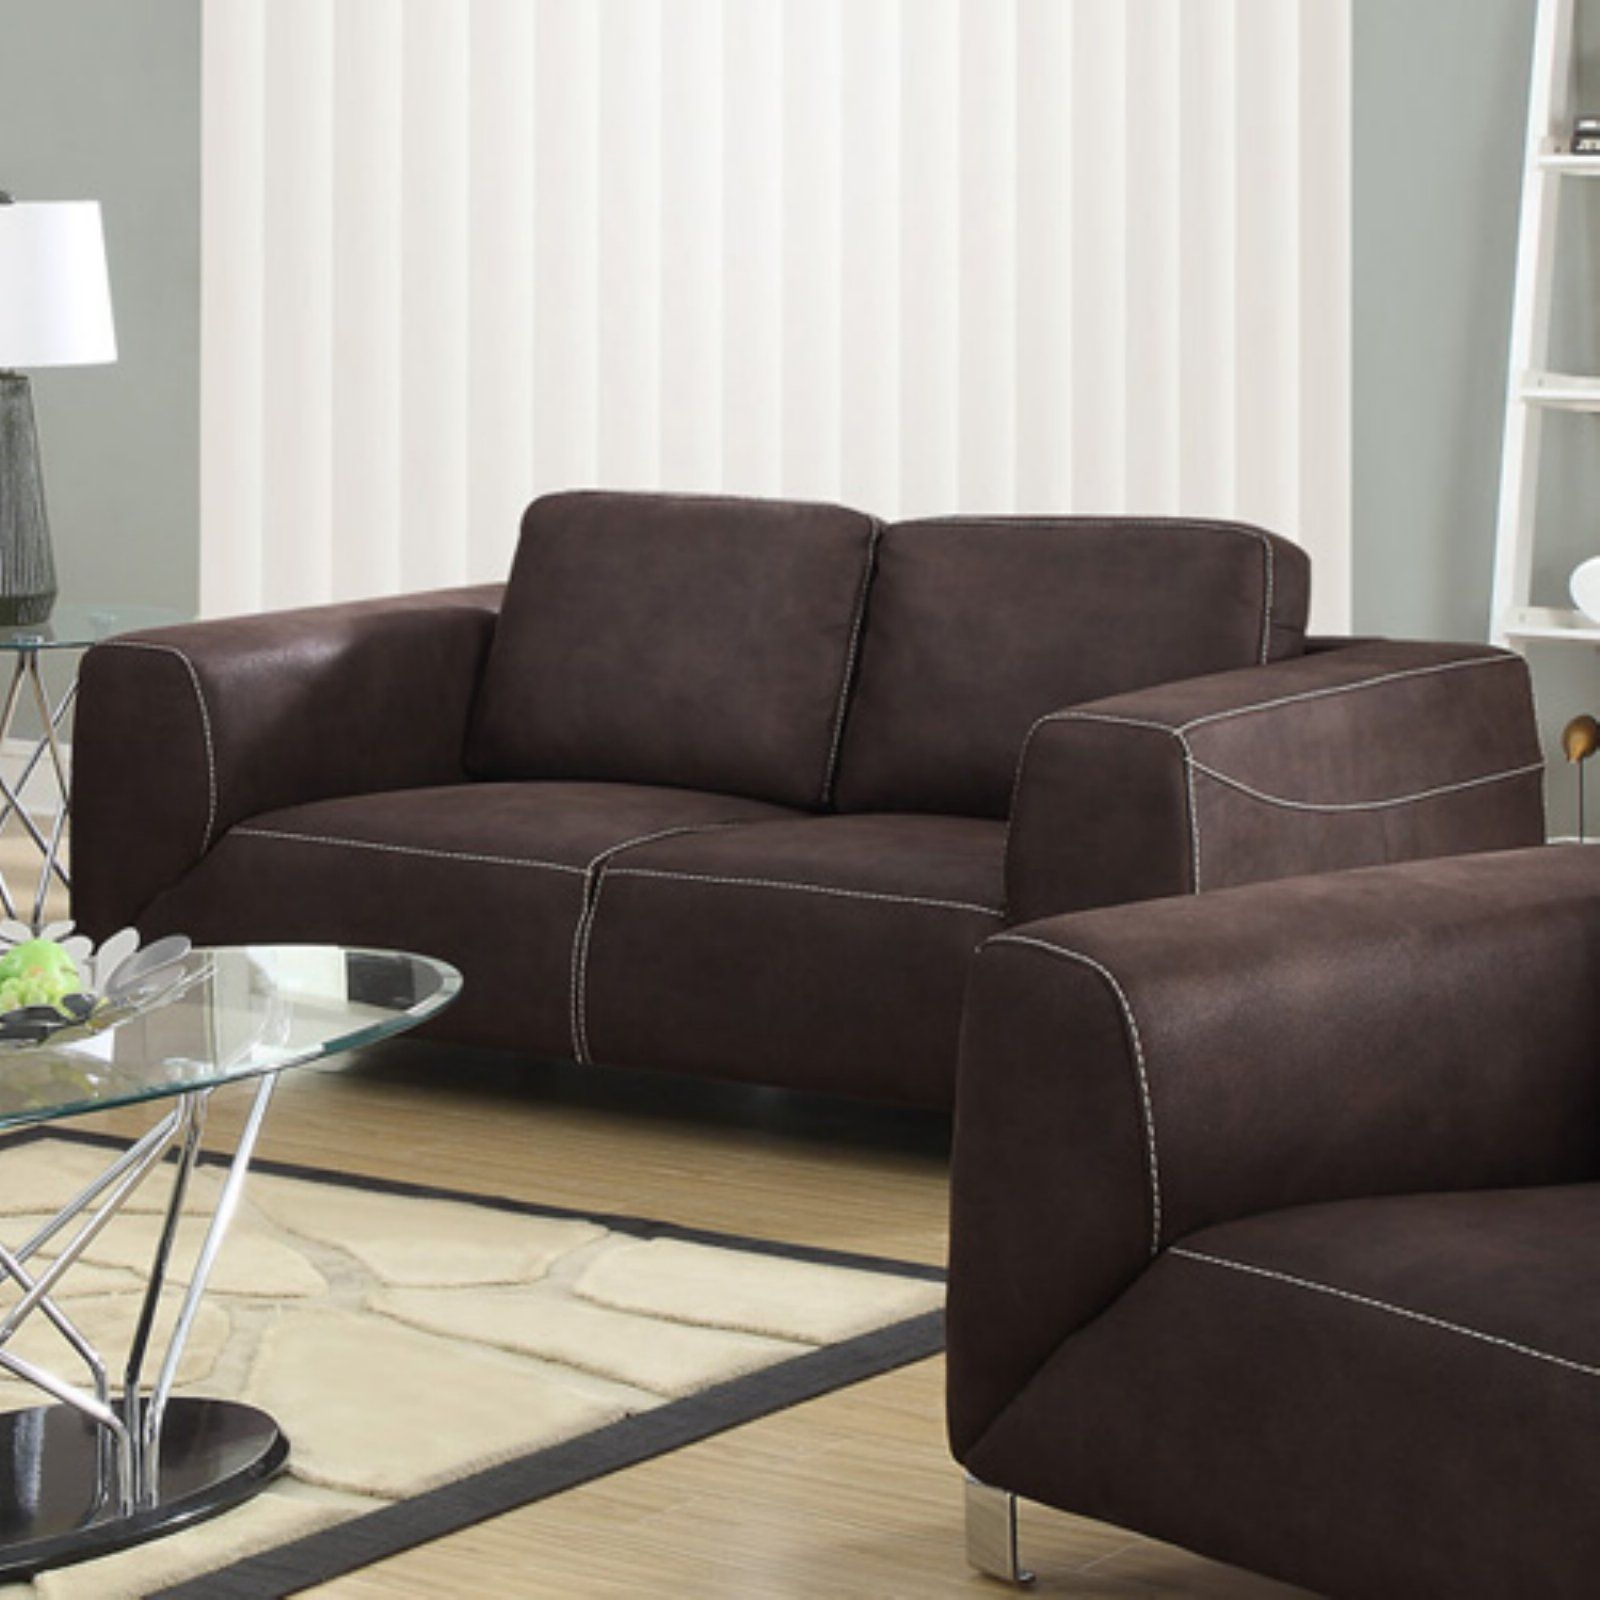 monarch specialties paxton love seat charcoal grey in 2019 rh pinterest com